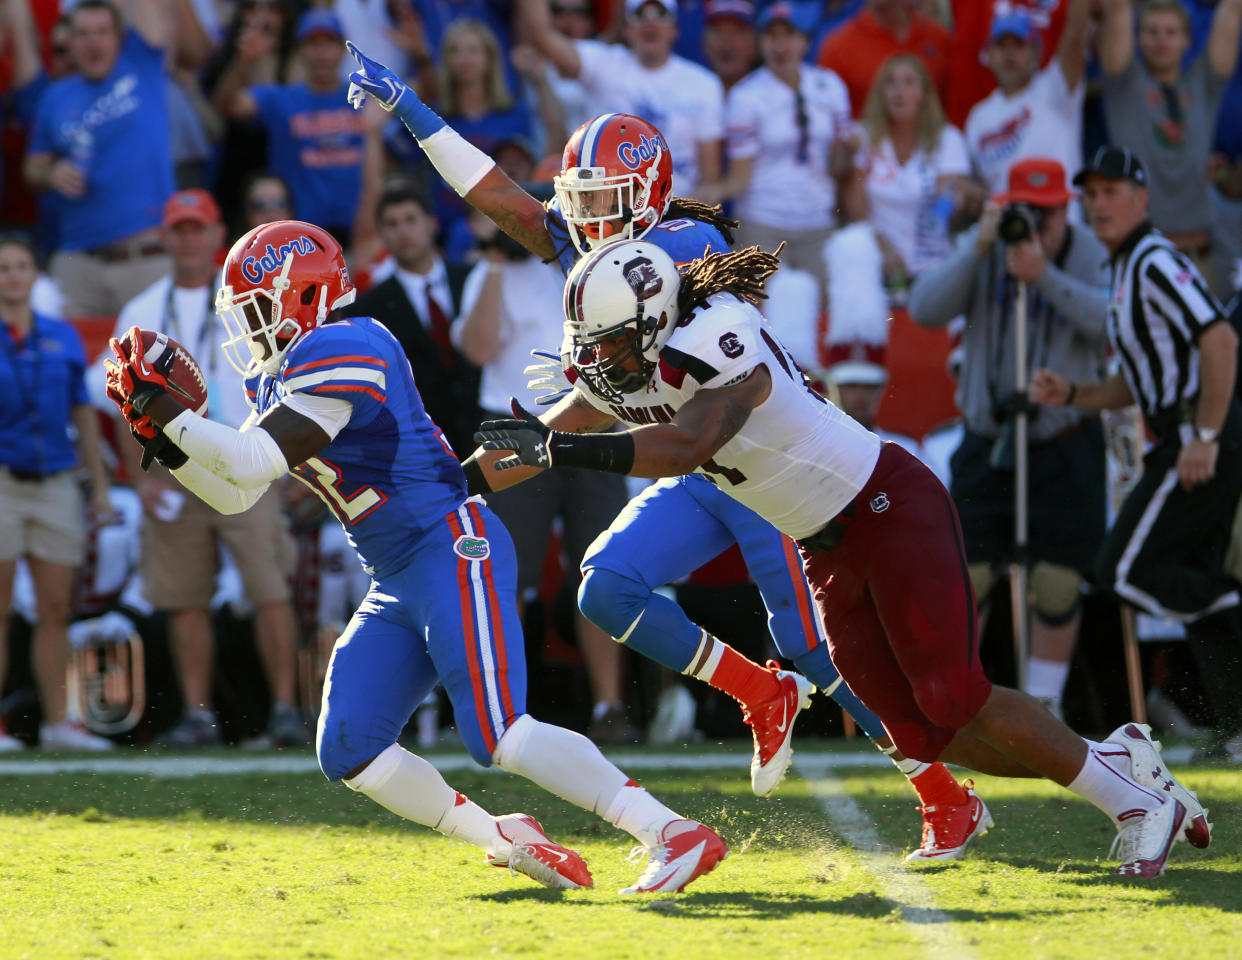 Florida's Chris Johnson, left, runs the ball to the 1-yard line in front of South Carolina's Justice Cunningham, right, after recovering a fumble on a kickoff during the first half of an NCAA college football game, Saturday, Oct. 20, 2012, in Gainesville, Fla. (AP Photo/John Raoux)